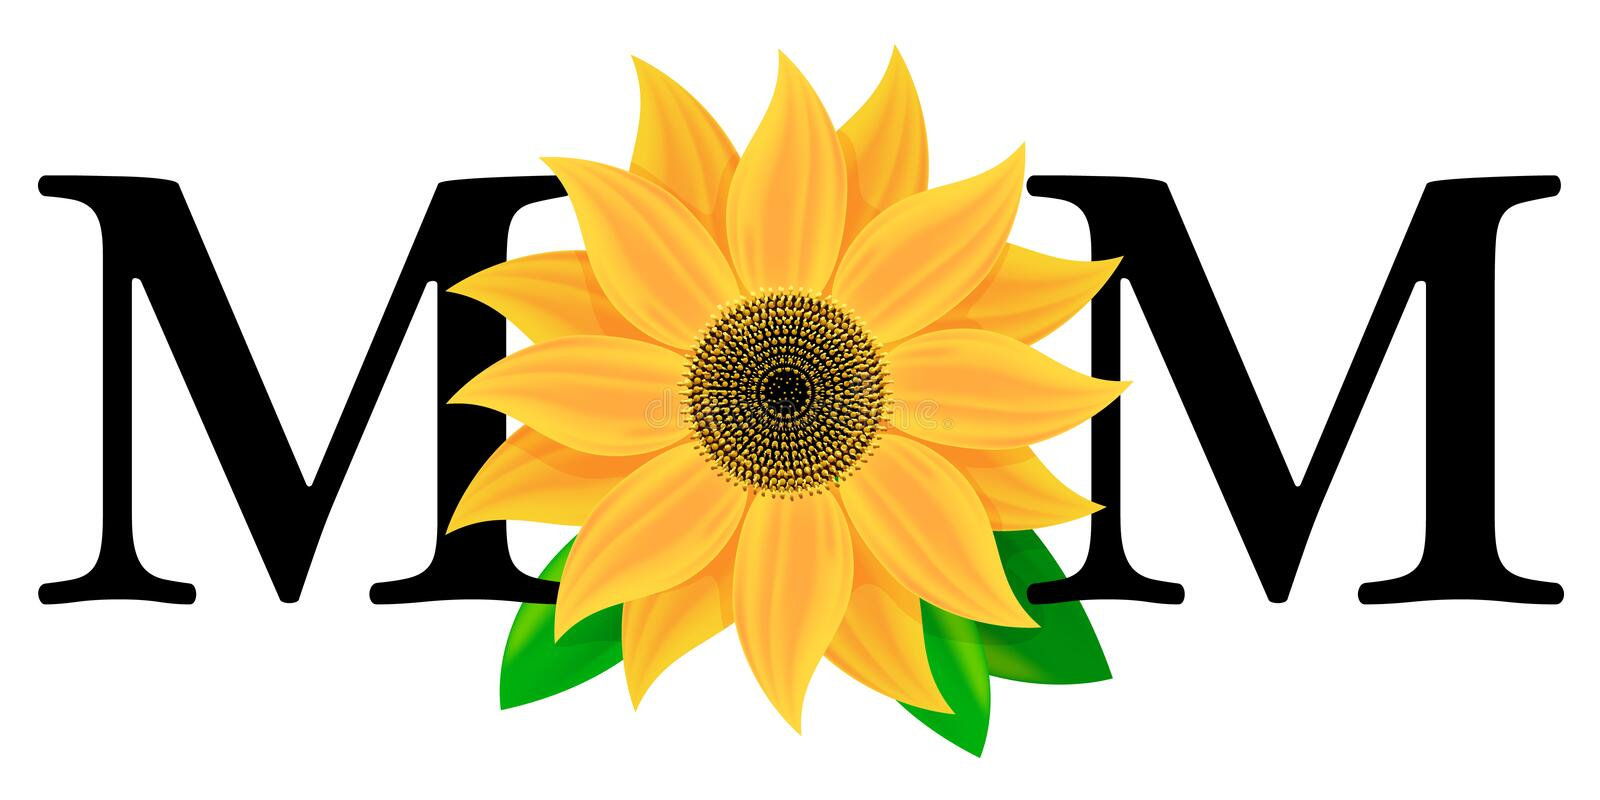 Mothers Day. An illustration of a bright yellow flower spelling the word Mom in celebration of mothers day